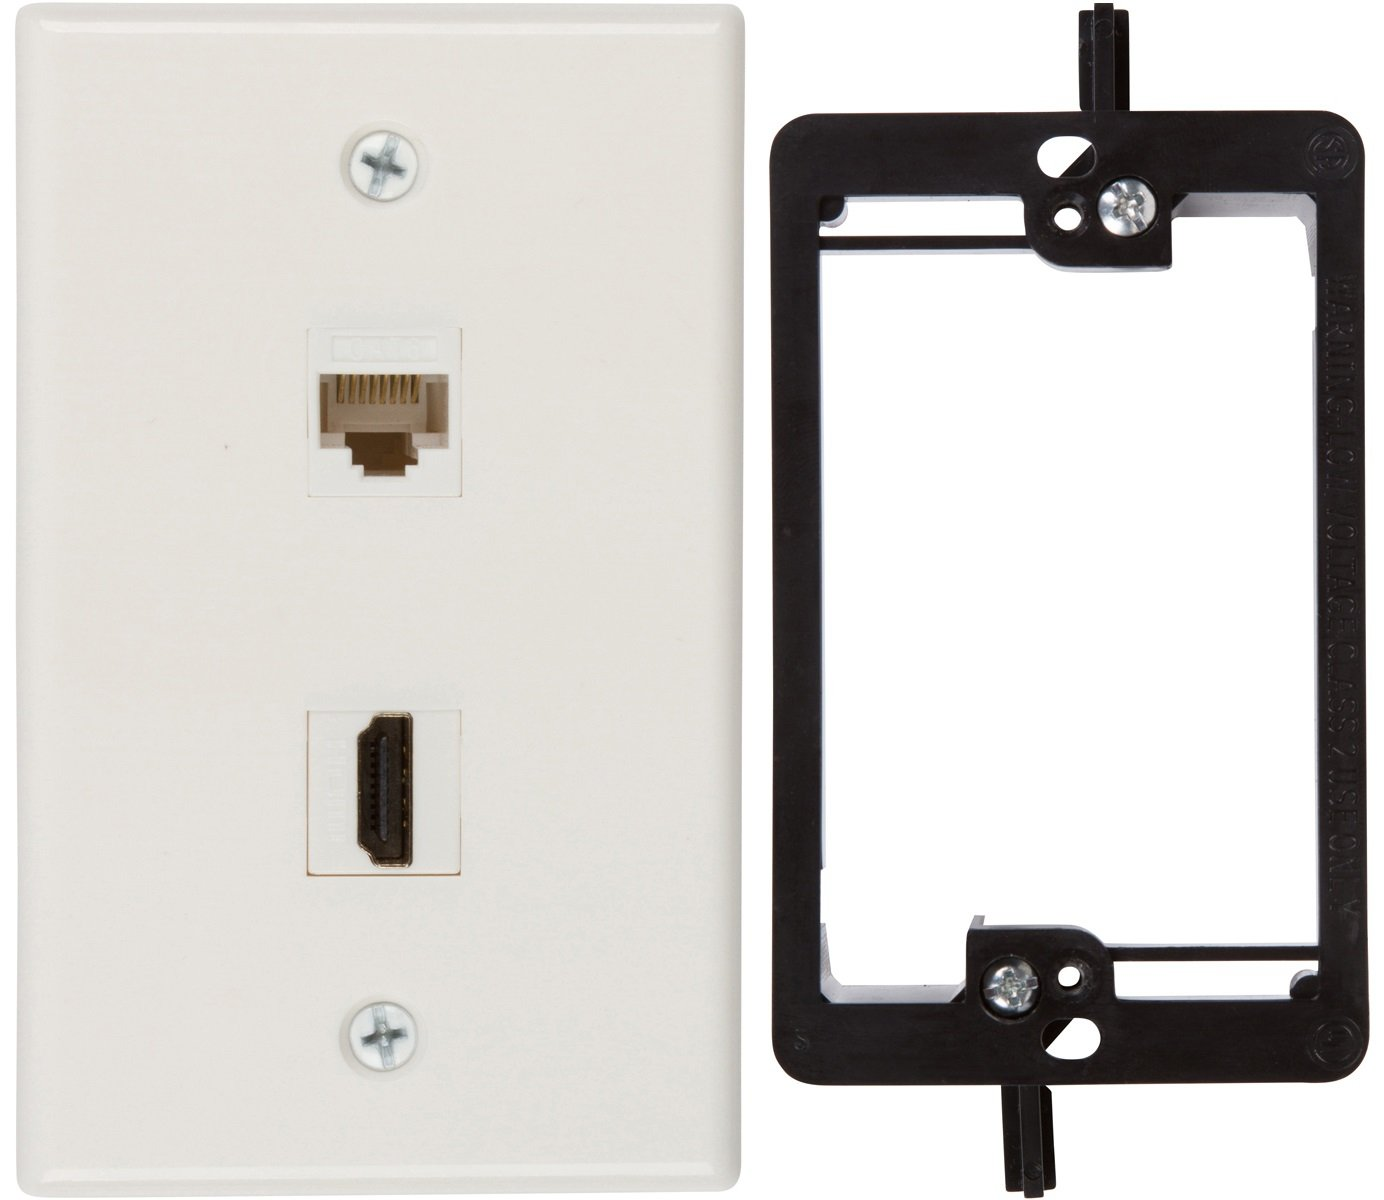 BATIGE Coaxial TV Cable F type RJ45 Cat6 Ethernet HDMI Keystone Compose Wall Plate 1 F-Type /& 1 CAT6 /& 2 HDMI